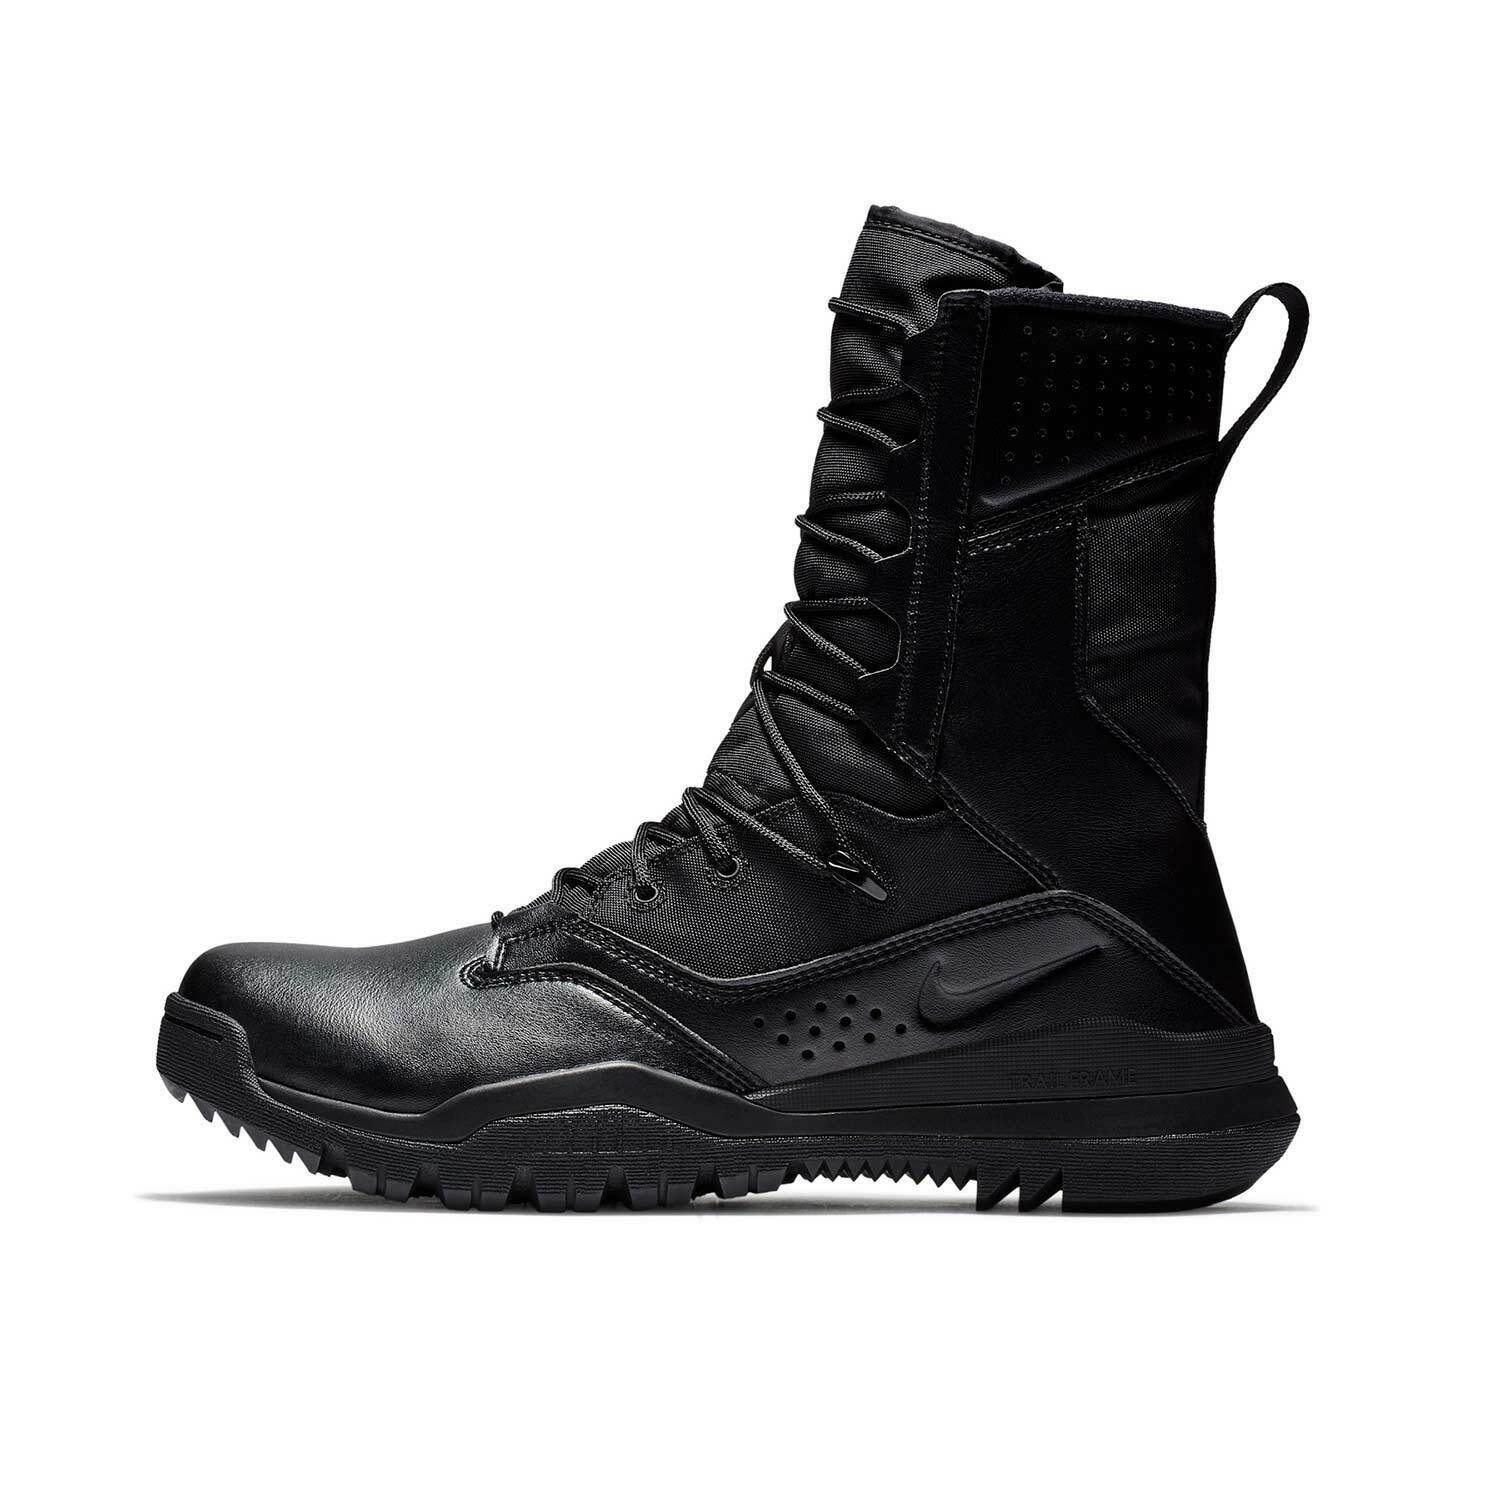 new concept 5df3a 24727 Nike SFB FIELD 2 8 Men Special Field Field Field Boots AO7507 001 Black Size  11.5